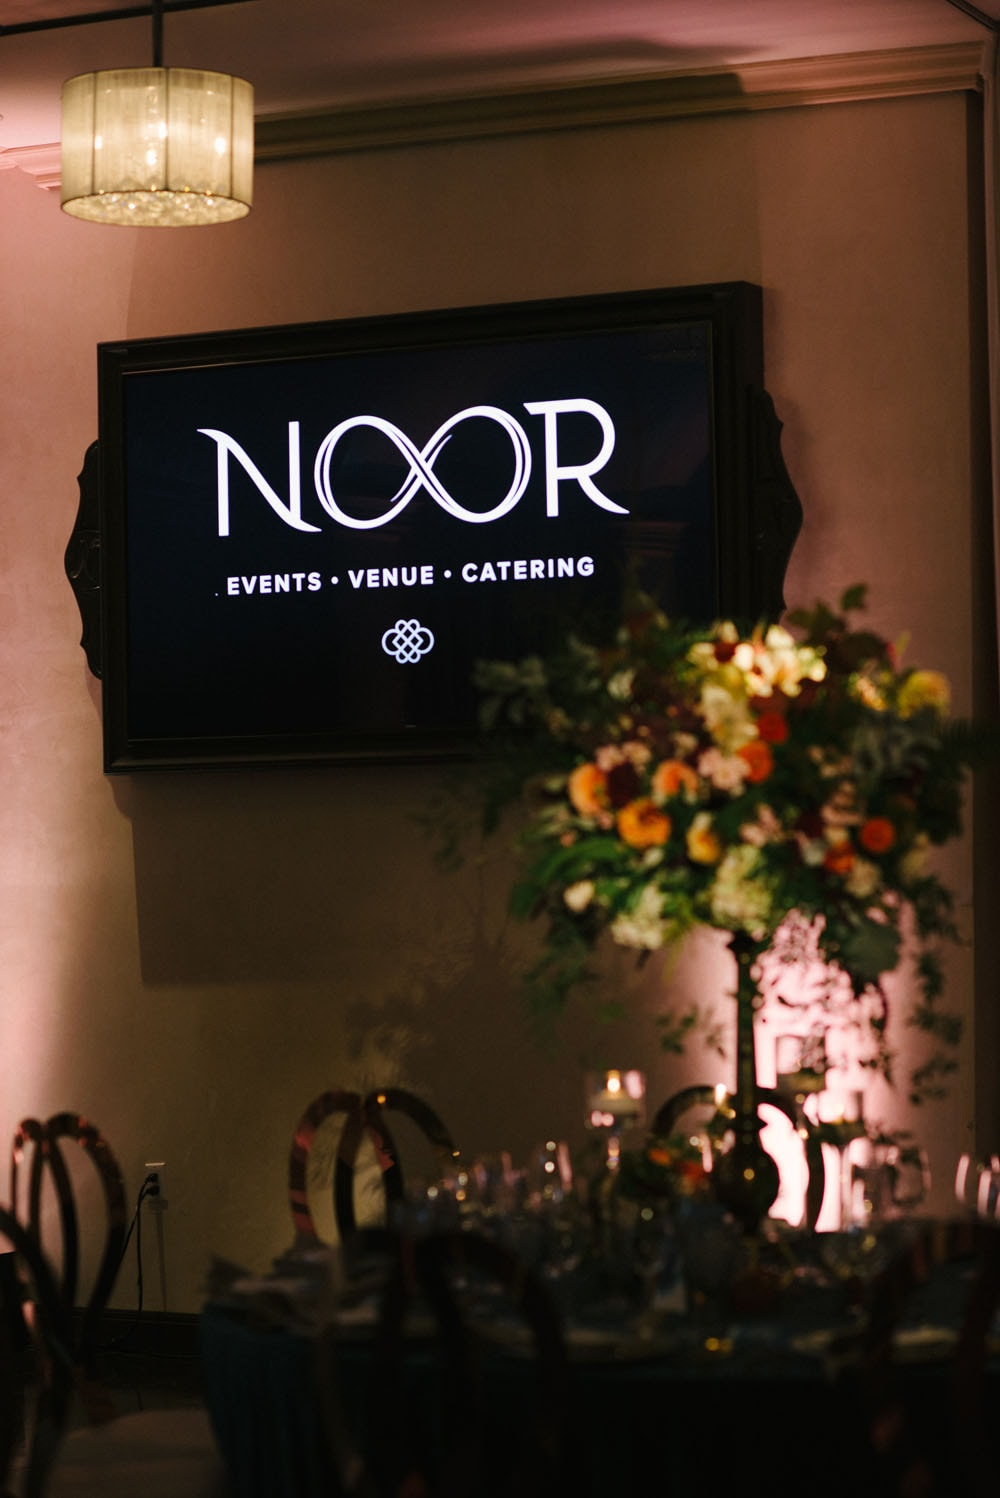 Wedding Show Screen Showing NOOR Pasadena Logo